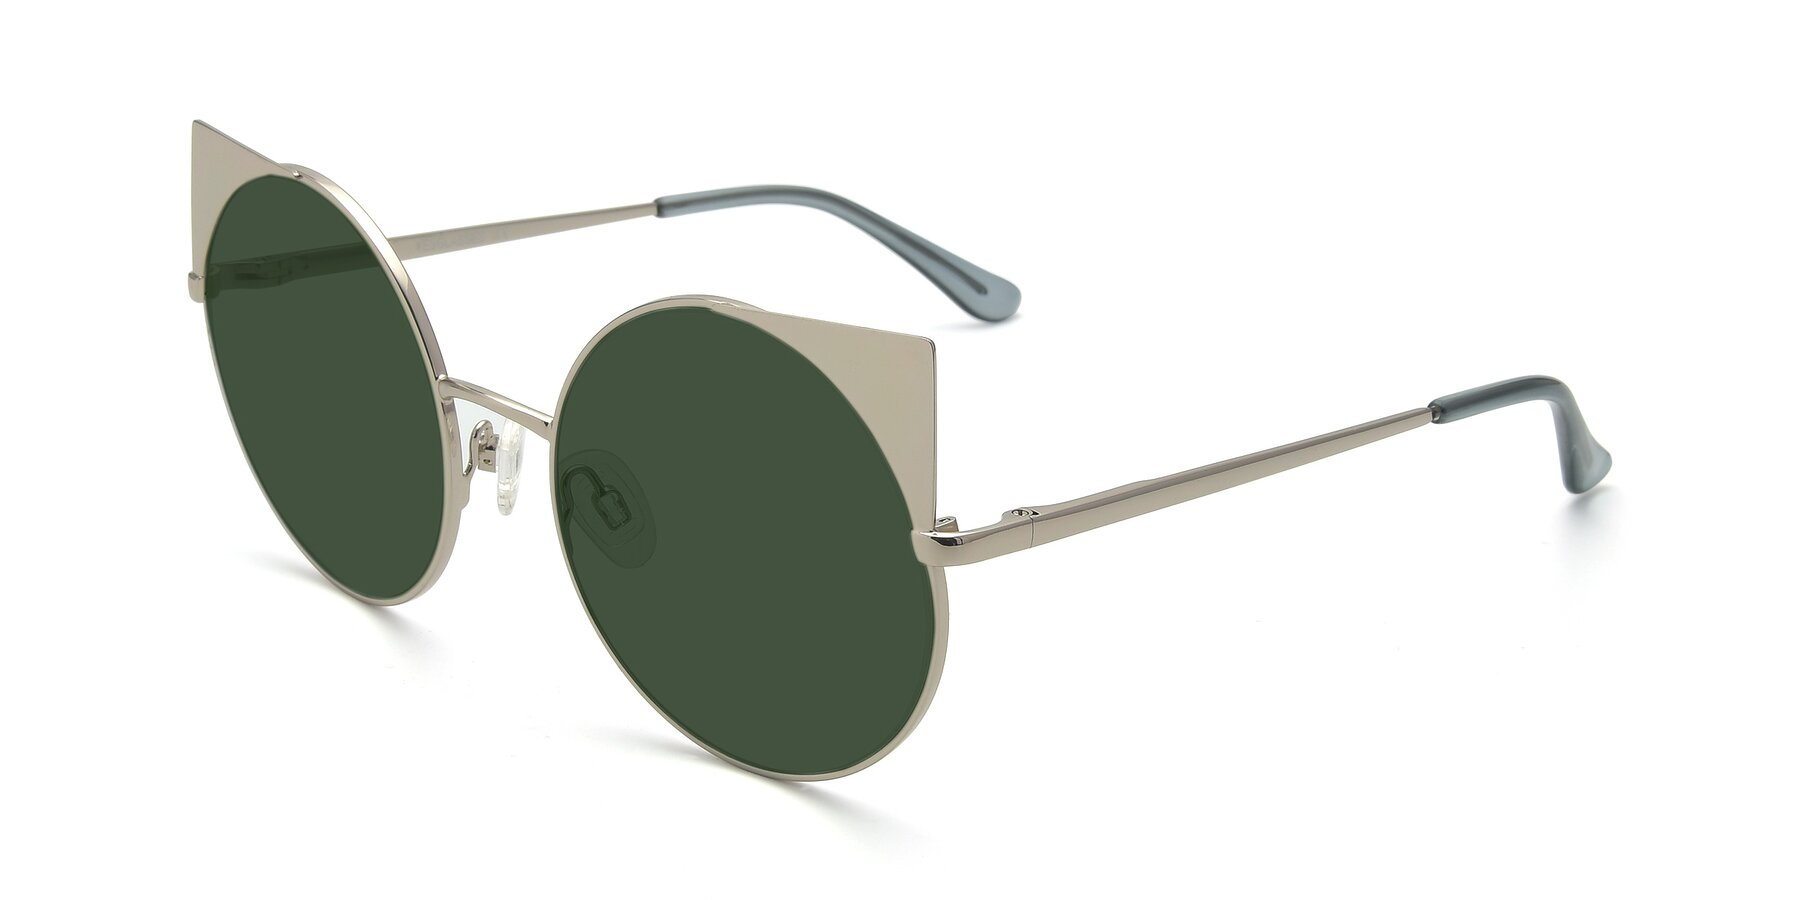 Angle of SSR1955 in Silver with Green Tinted Lenses